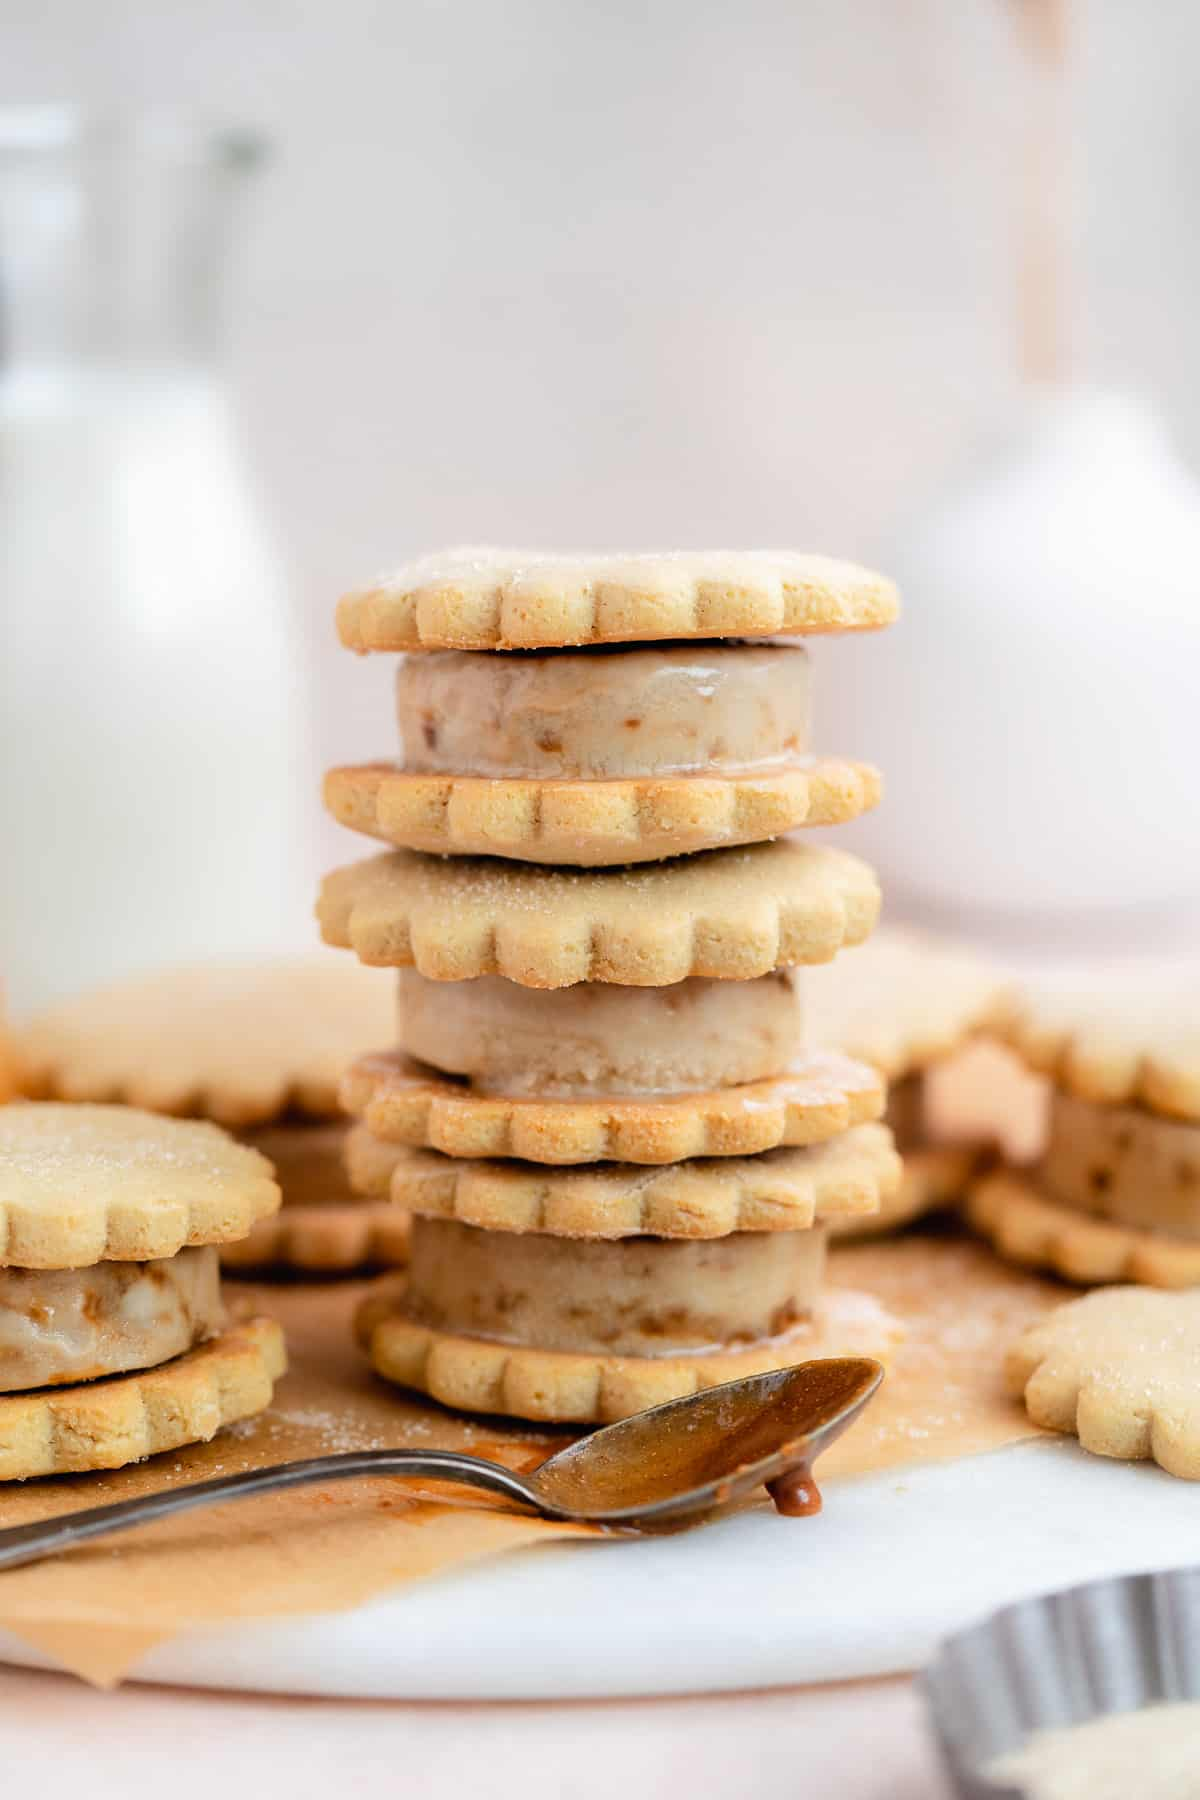 Side view of stack of 3 caramel sugar cookie ice cream sandwiches on parchment paper and marble slab.  One ice cream sandwich and silver spoon dipped in caramel sauce are resting nearby.